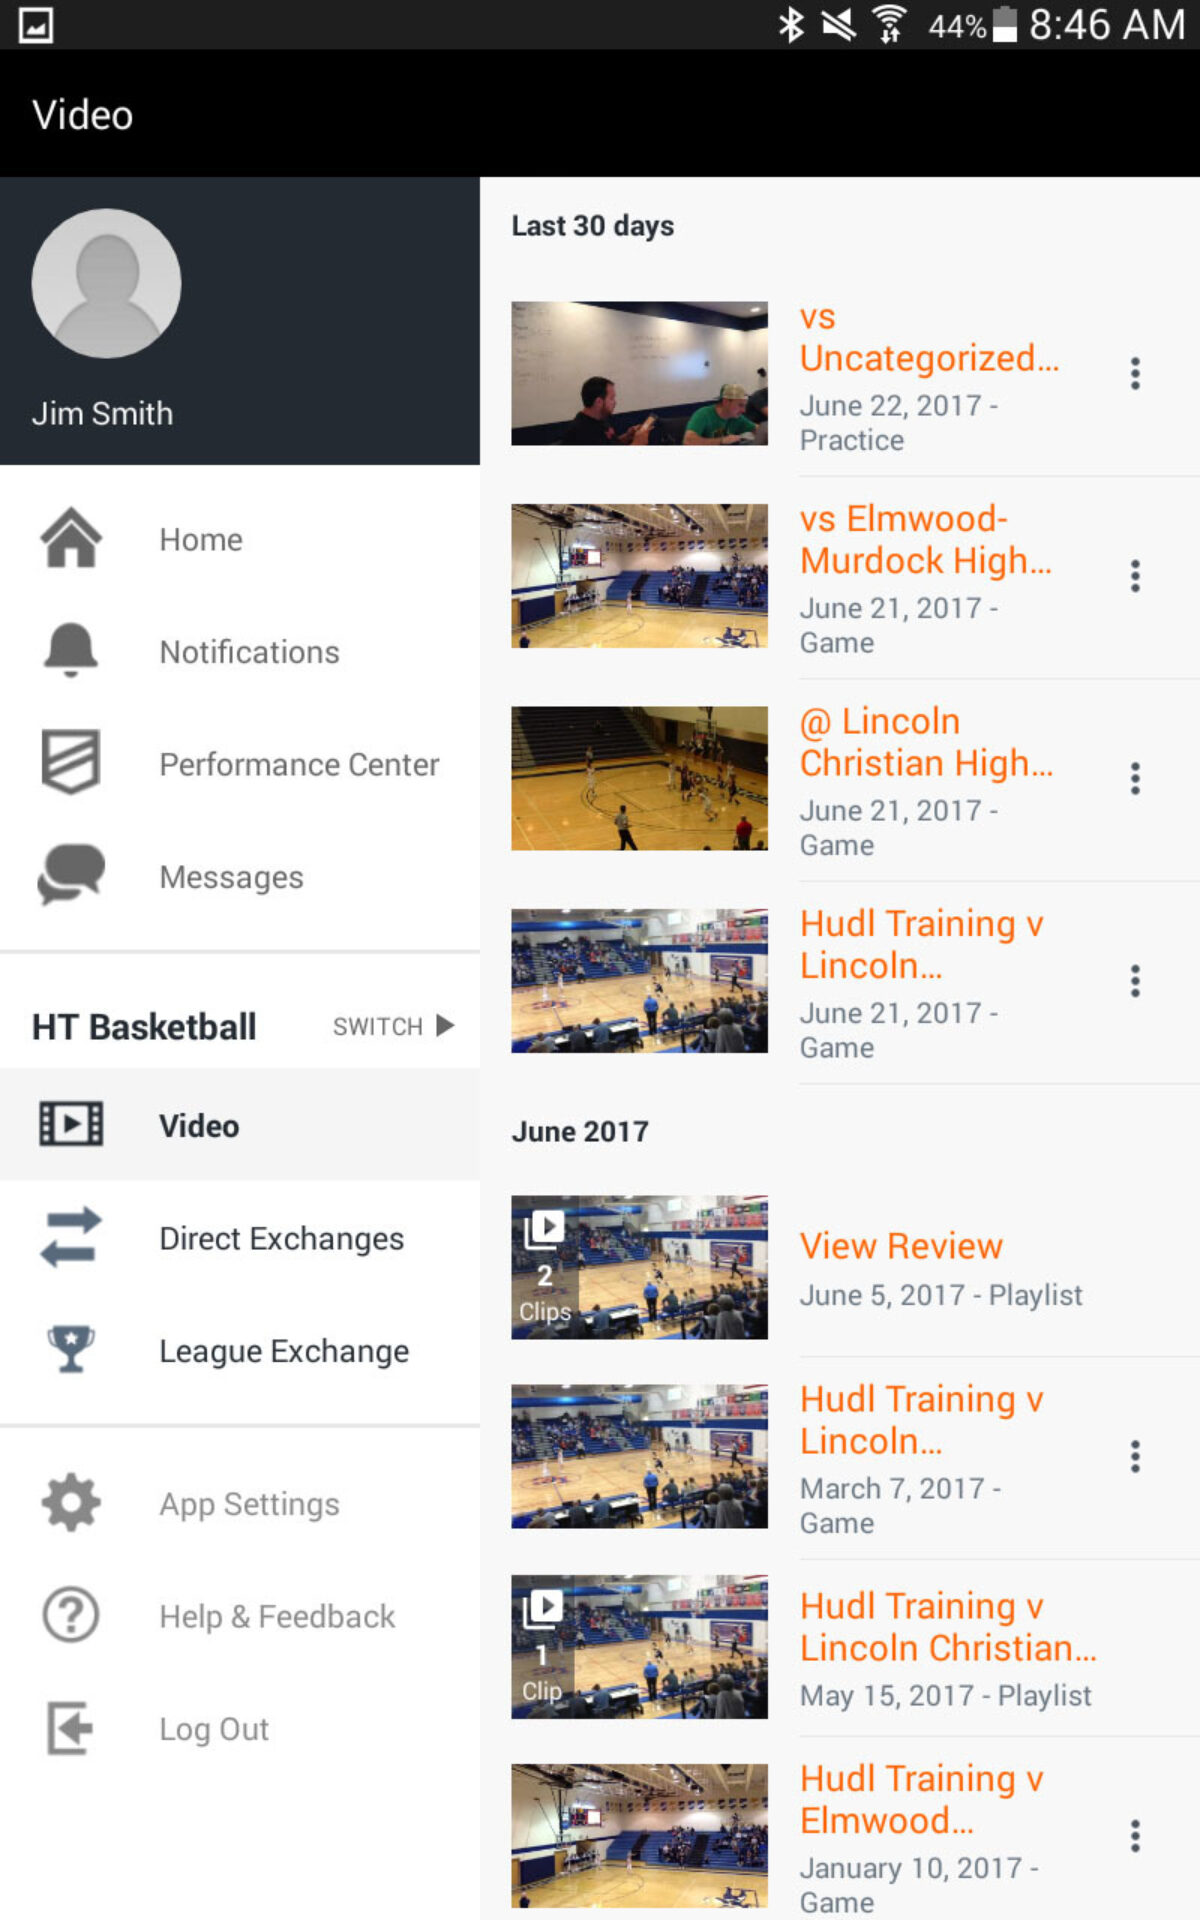 Find Your Video | Hudl Support